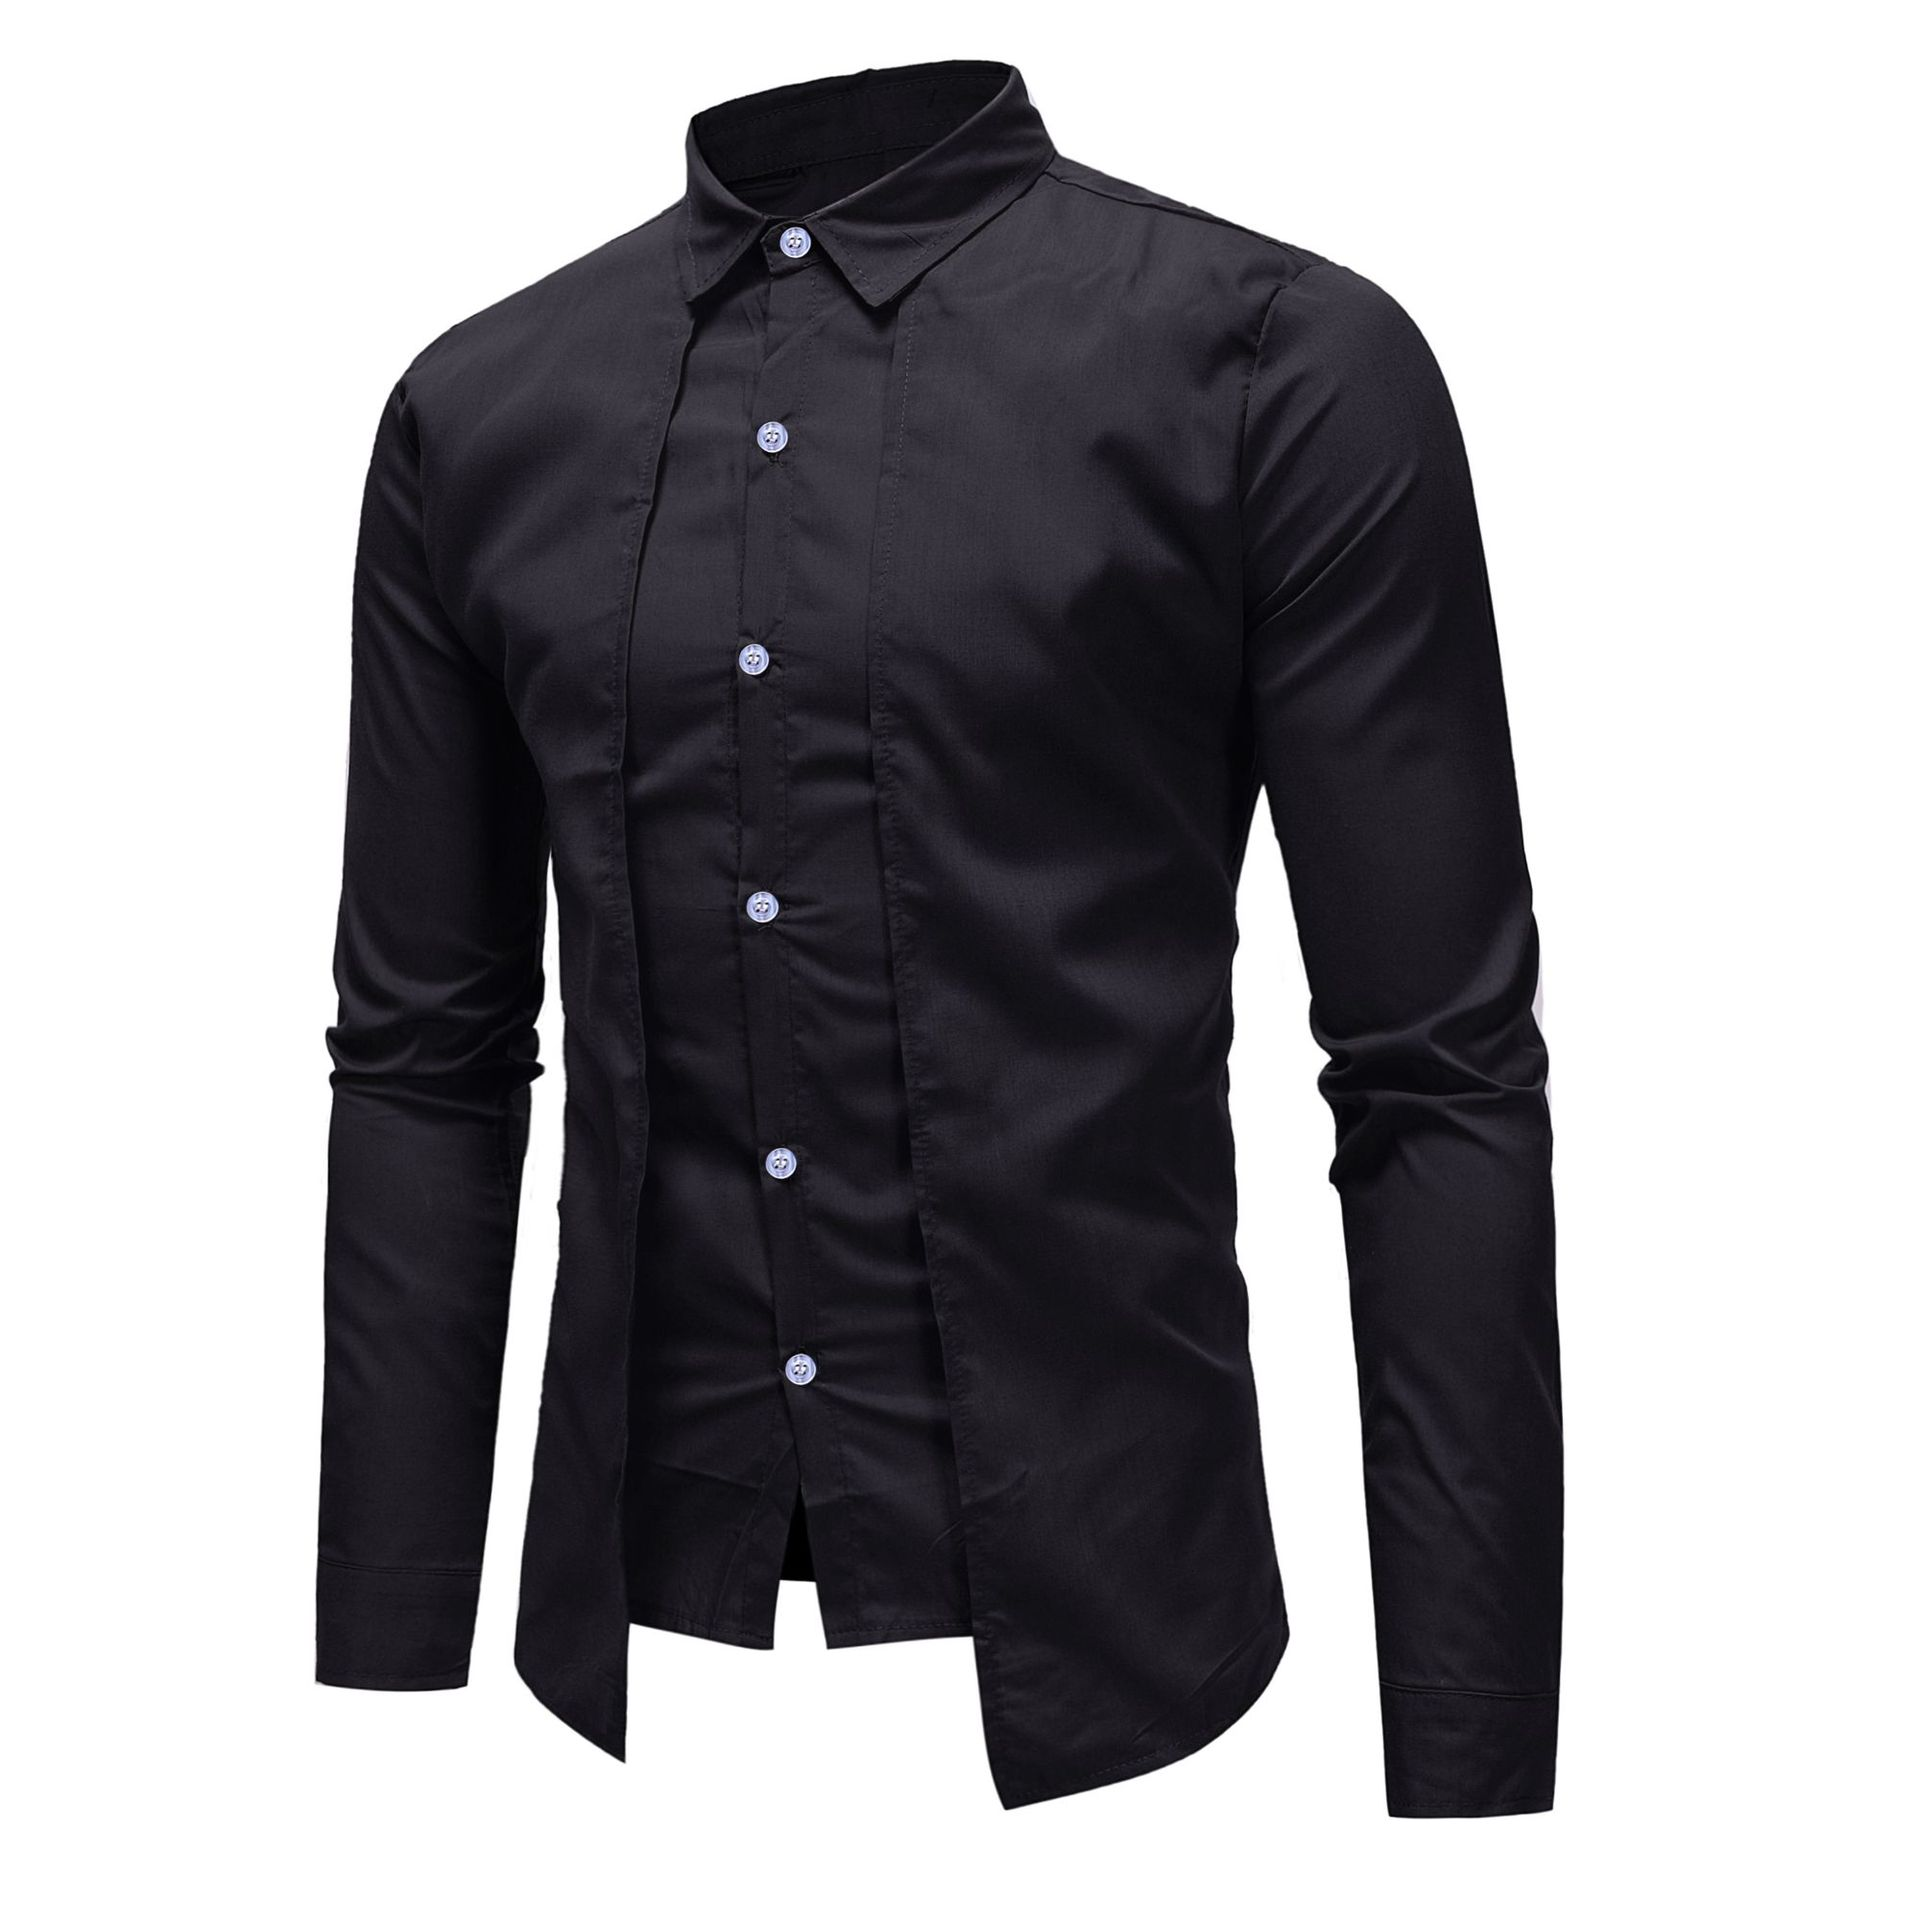 Coolred Mens Lapel Long-Sleeve Button Down Floral Print Fashion Shirts